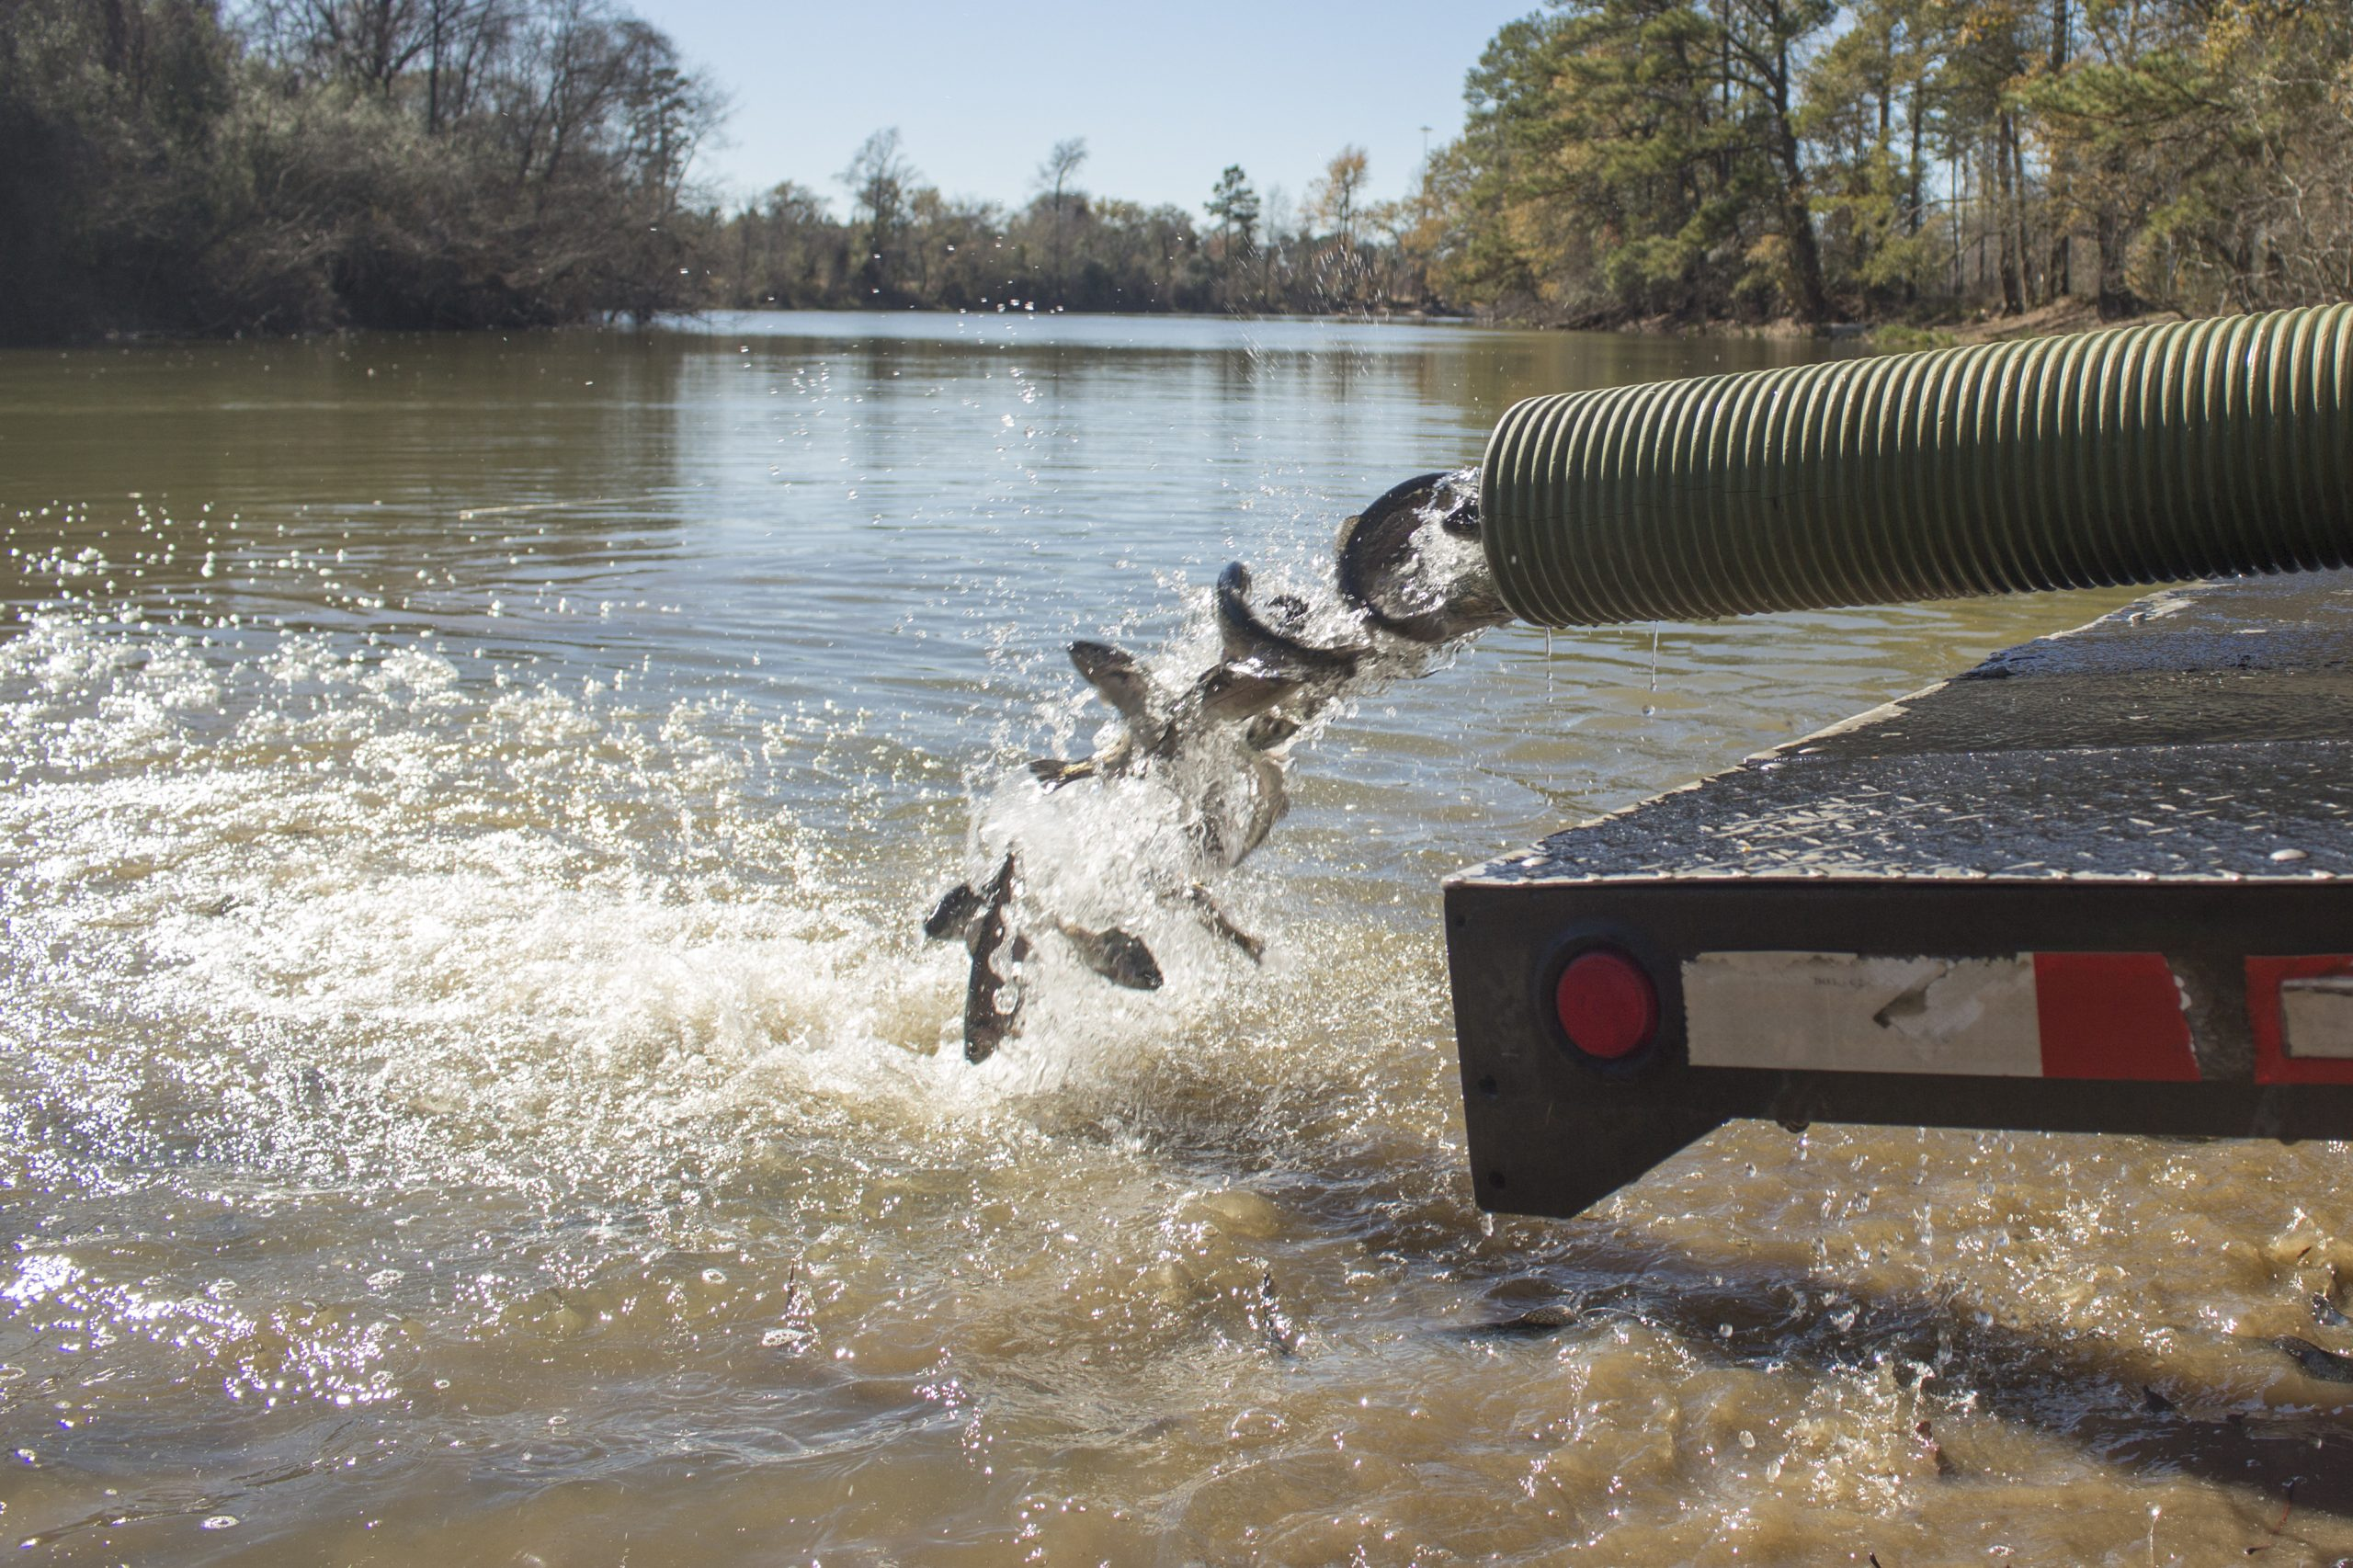 State Parks Department to Deliver Thousands of Trout to Precinct 4 Parks